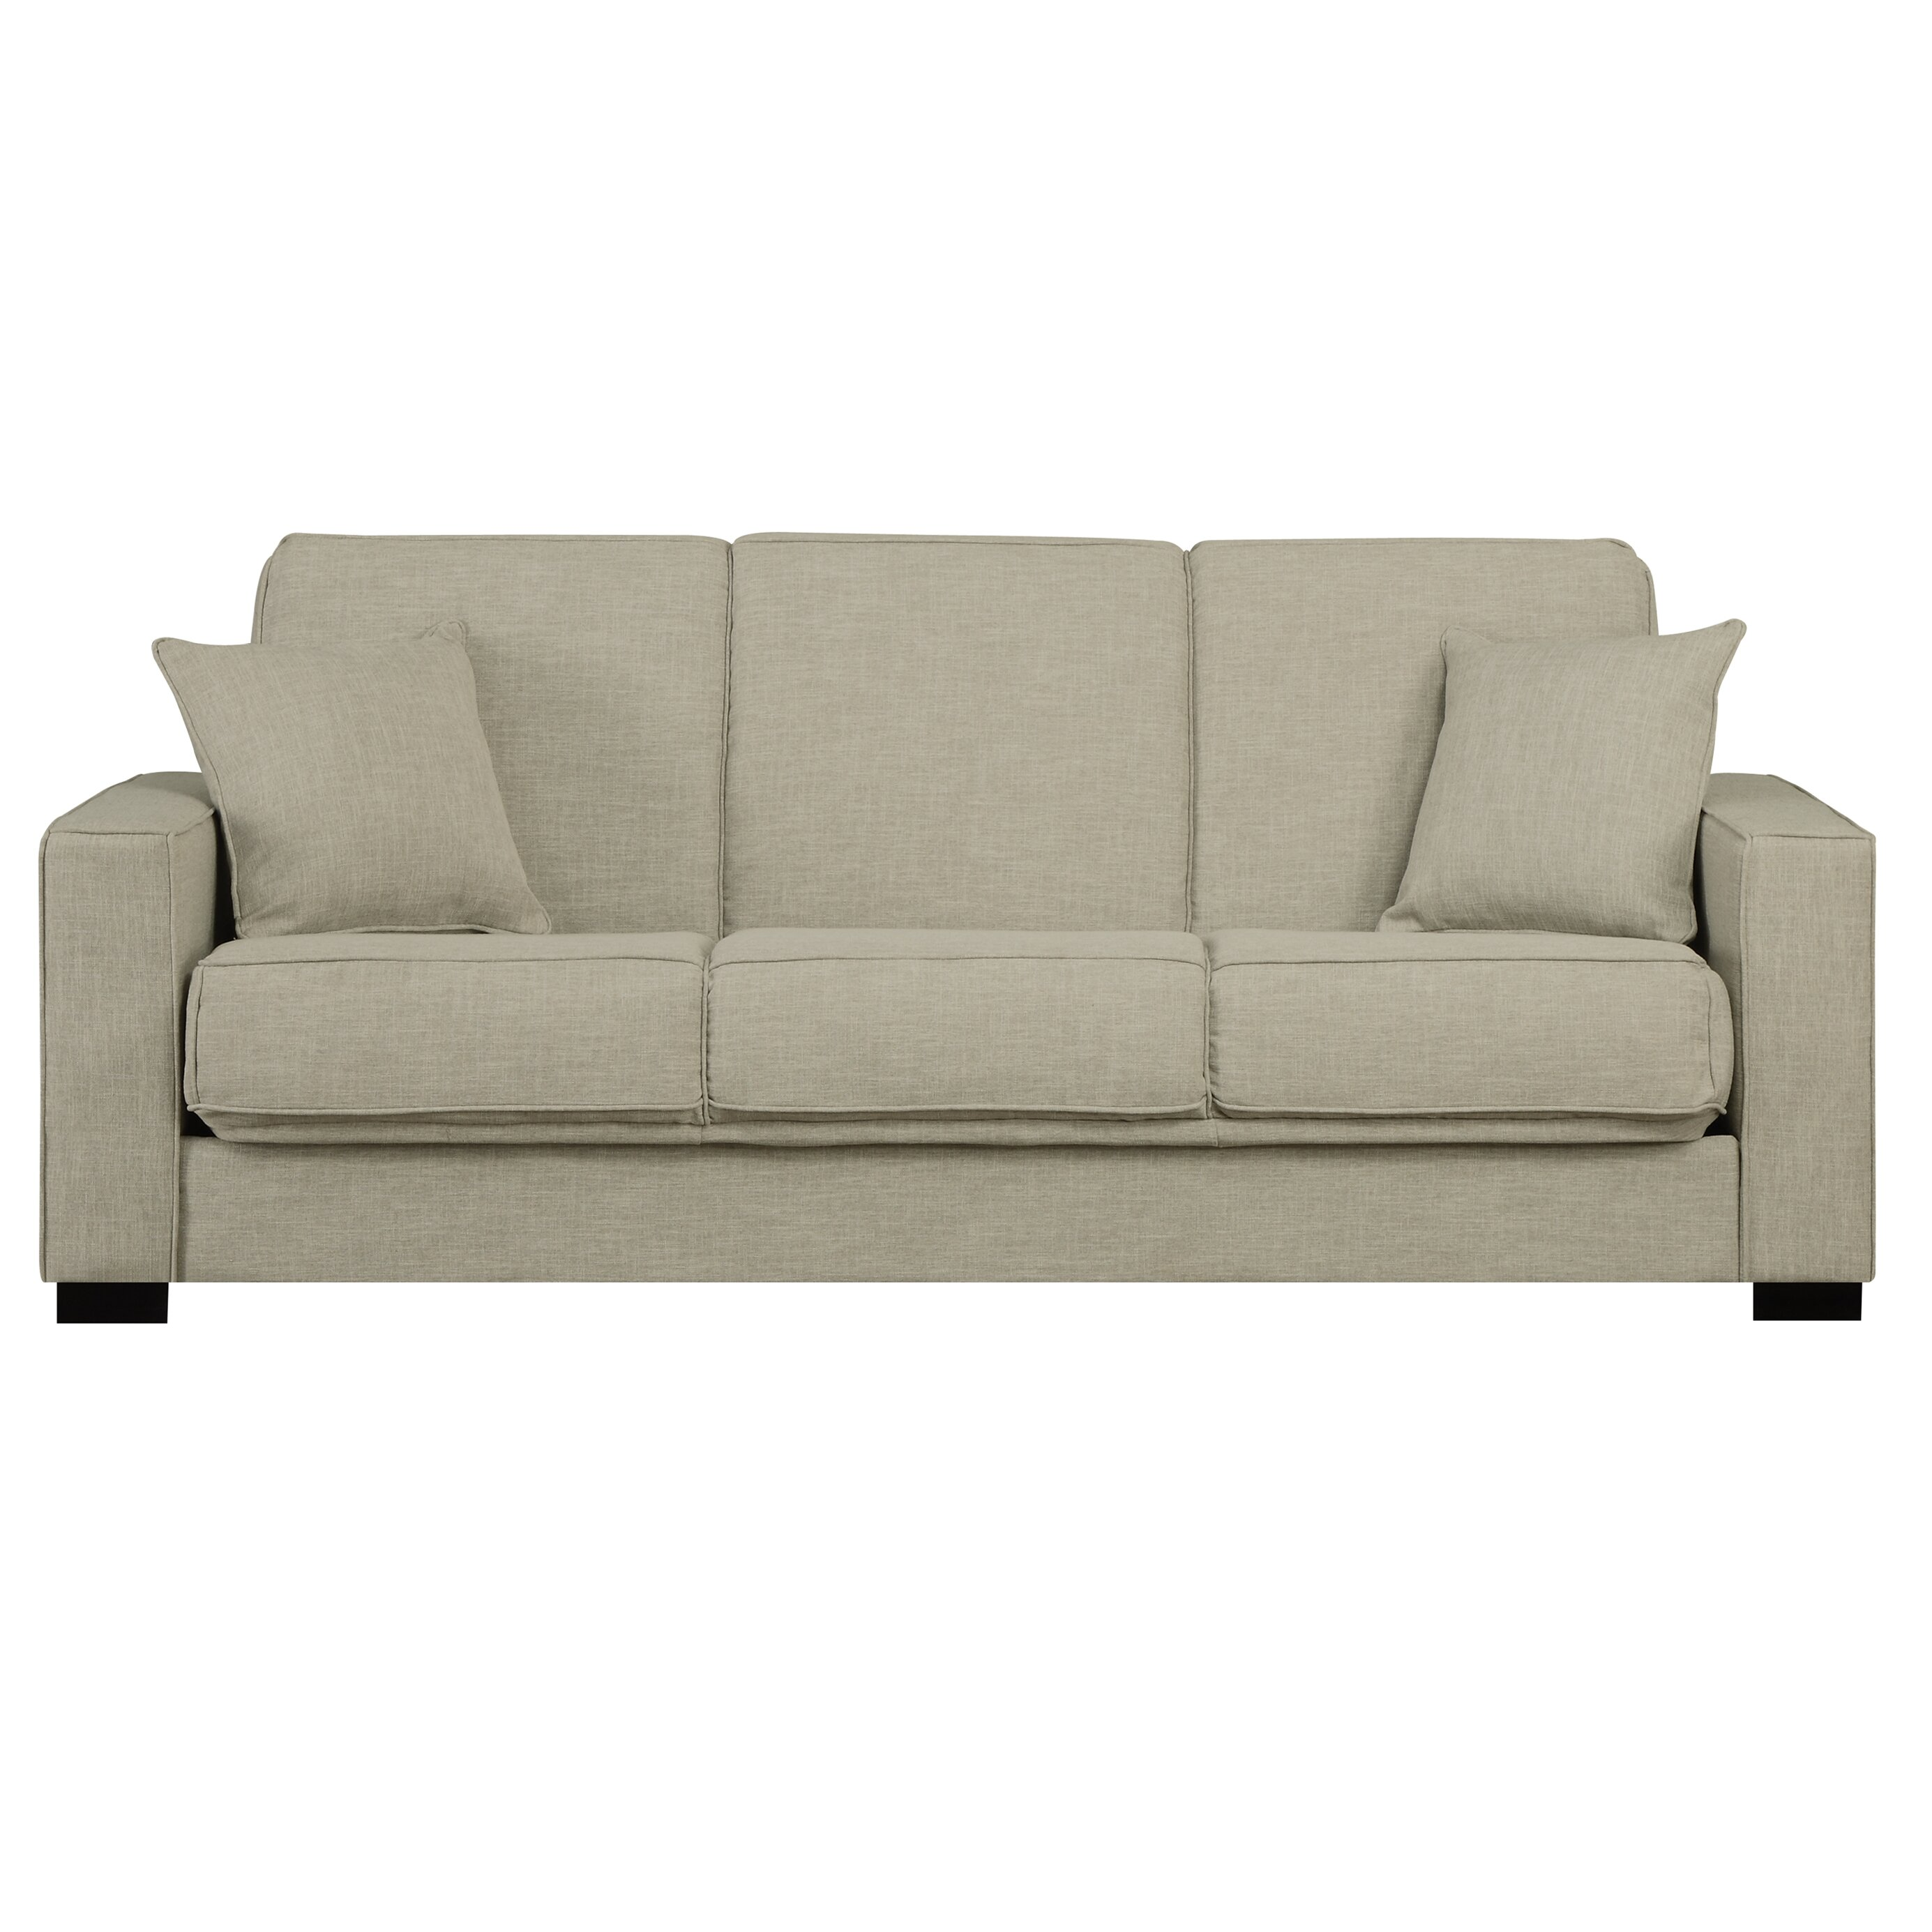 Zipcode Design Kaylee Full Convertible Sleeper Sofa Reviews Wayfair